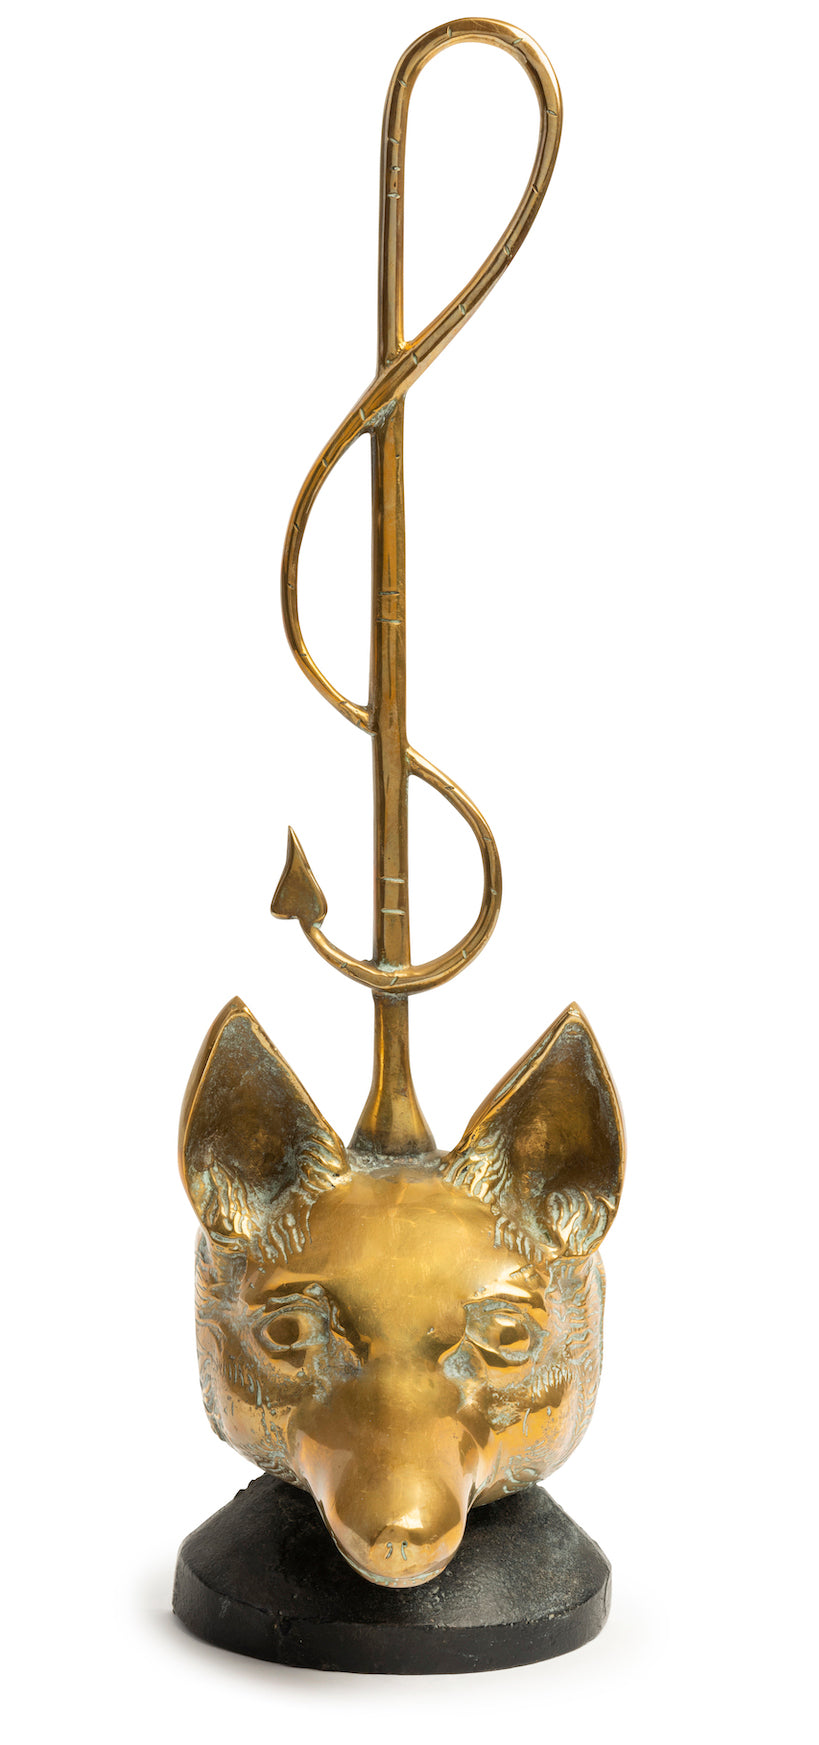 SOLD A solid brass doorstop in the form of a fox and riding crop, French Circa 1950